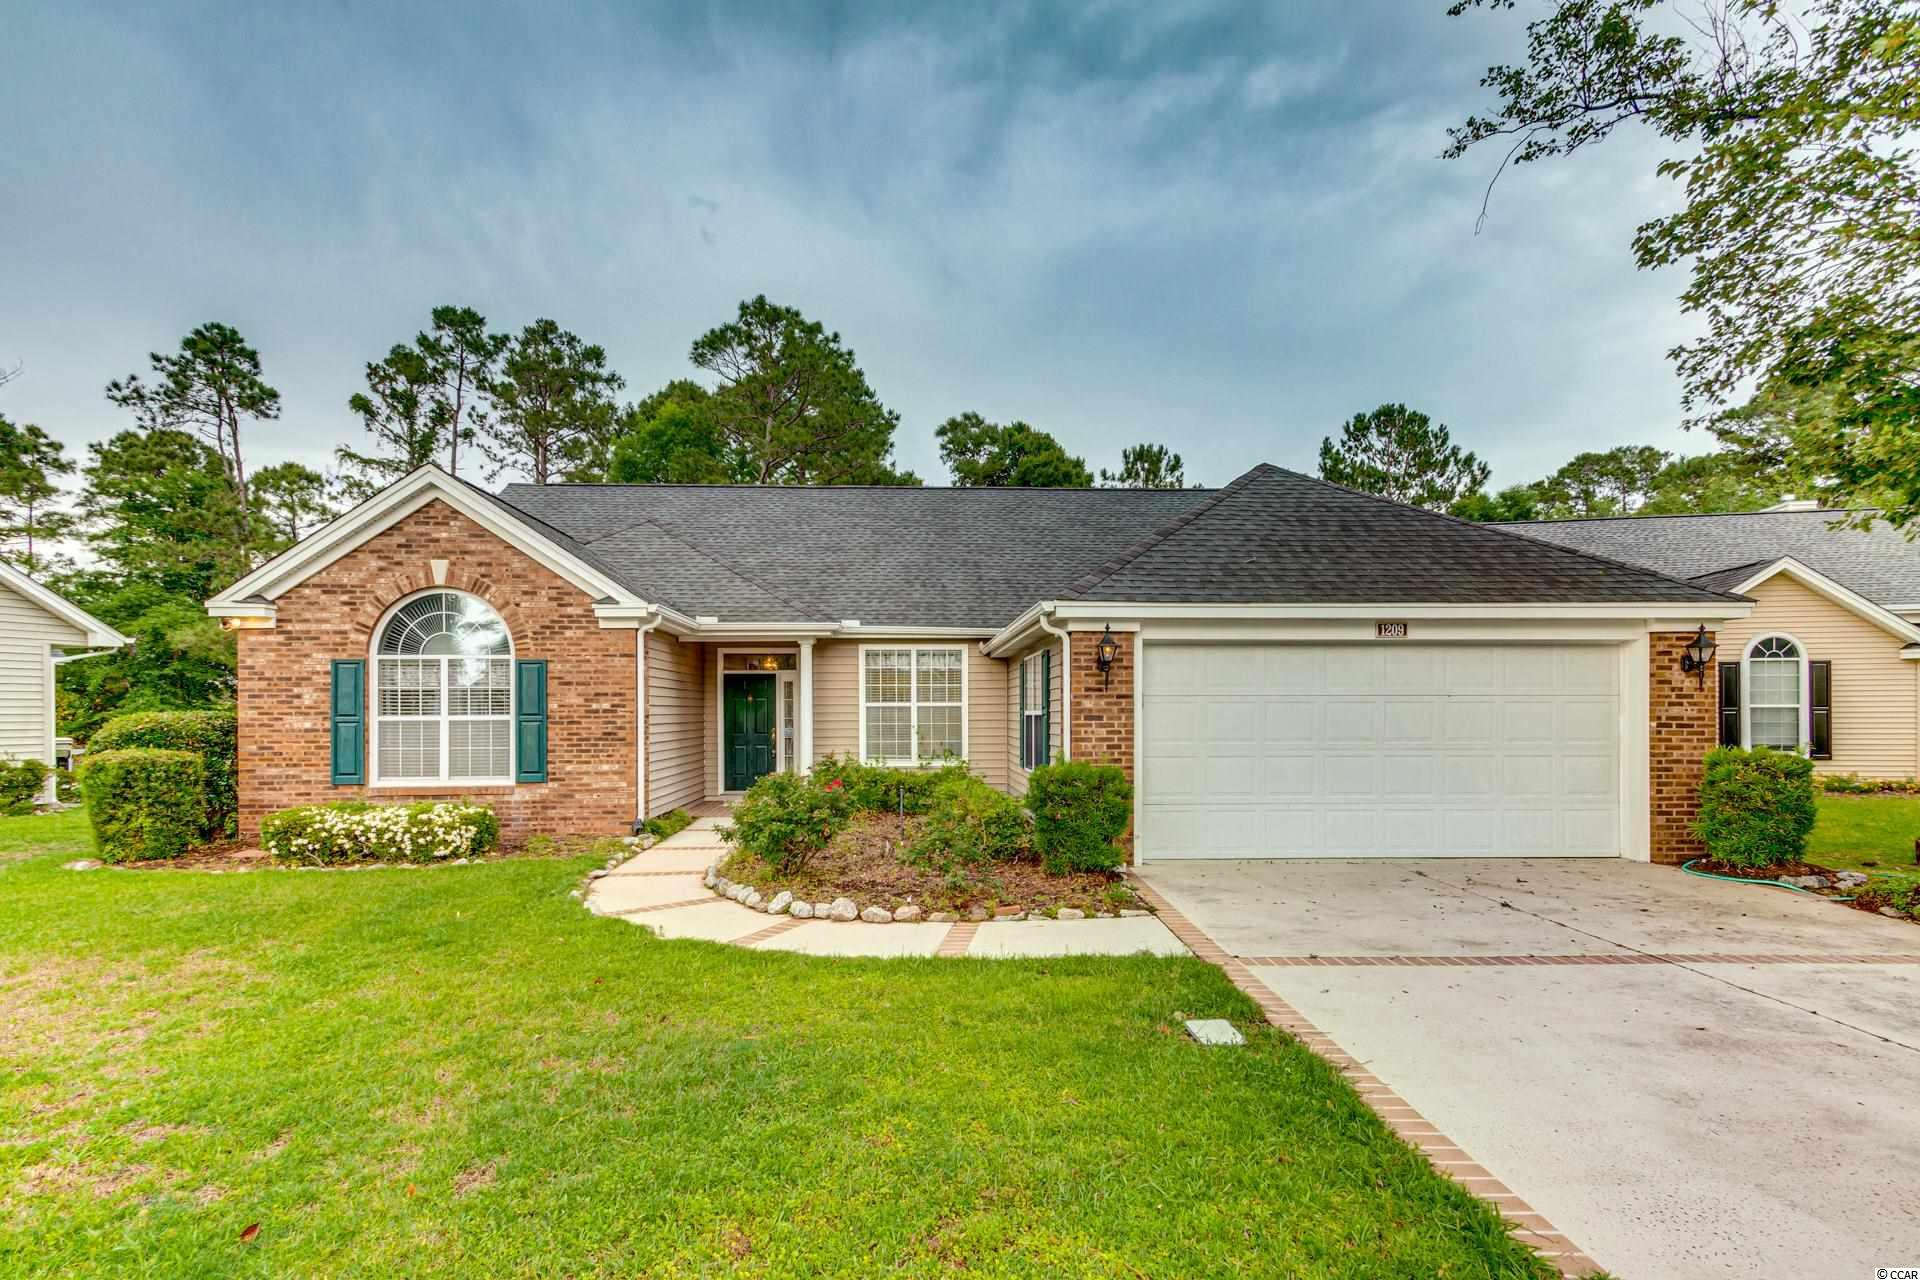 3 BR/2 BA home in 55+ adult community of Myrtle Trace.  Large home with open floor plan, high ceilings, sunroom, and a unique laundry storage room next to the garage. Located on a quiet cul-de-sac street.  Community offers outdoor pool, clubhouse & many activities.  Conway hospital and numerous doctor offices nearby.